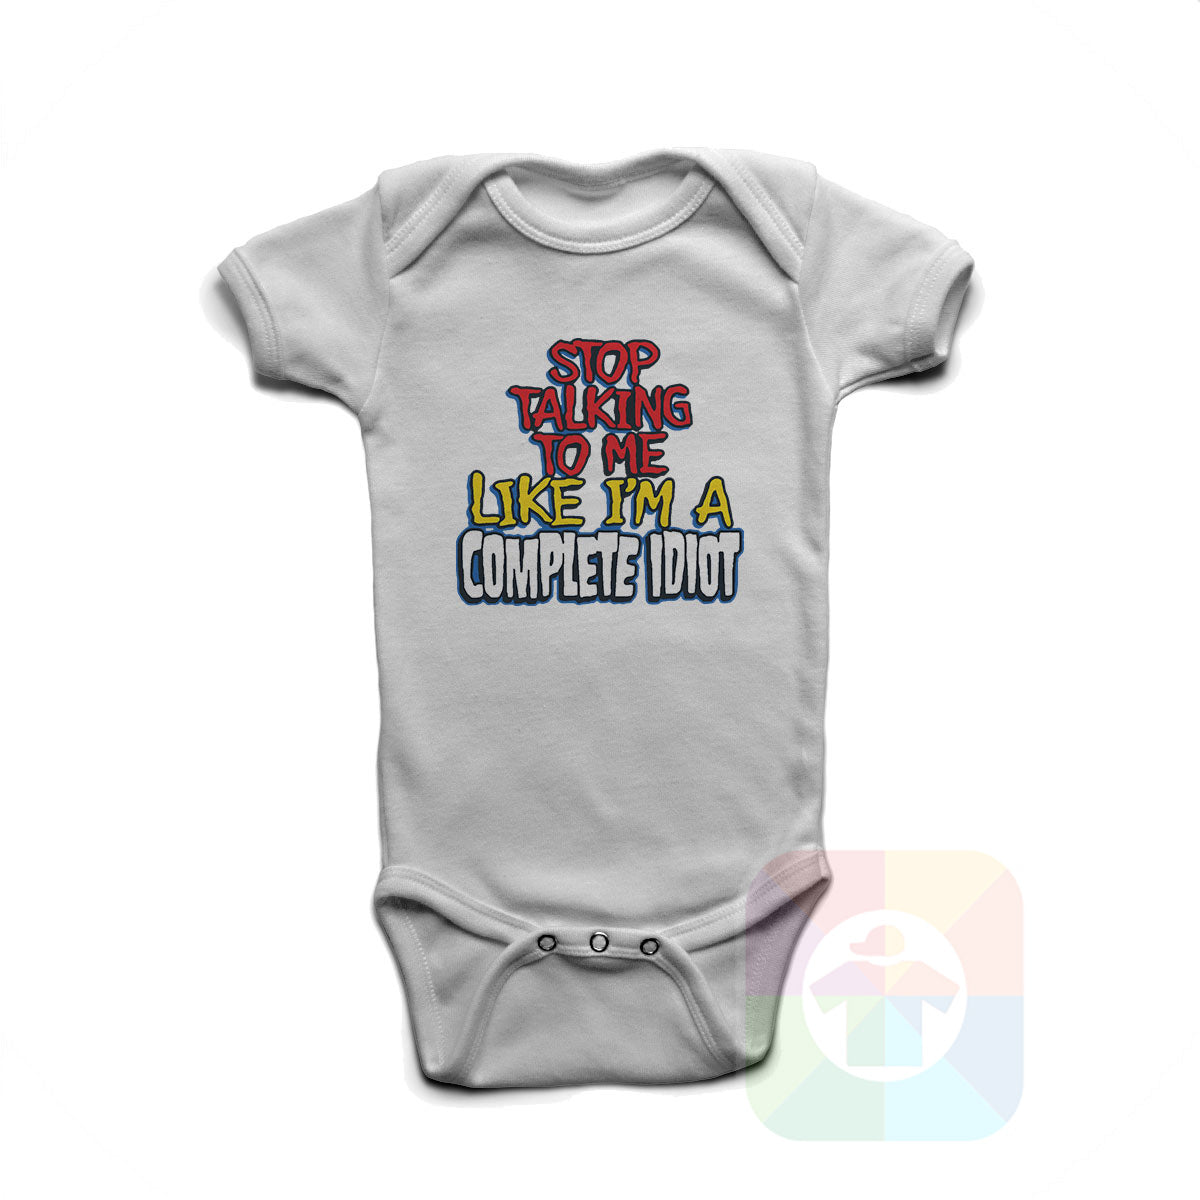 A WHITE Baby Onesie with the  ' Baby onesie 'STOP TALKING TO ME LIKE A COMPLETE IDIOT' kids funny novelty design. #8341 / New Born, 6m, 12m, 24m Sizes ' design.